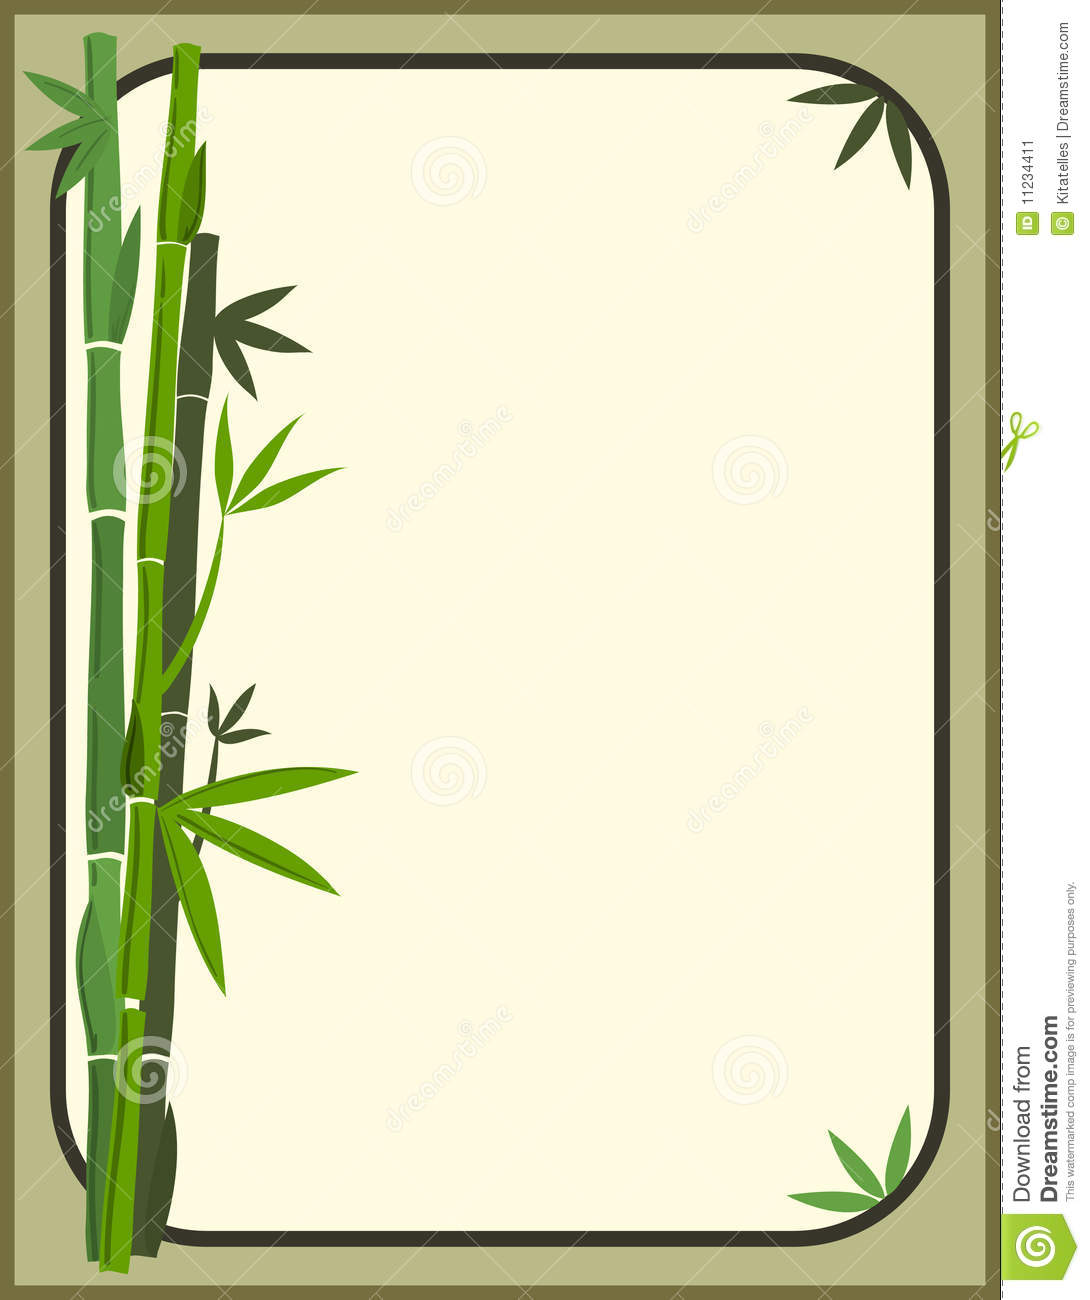 Bamboo borders or clip art.